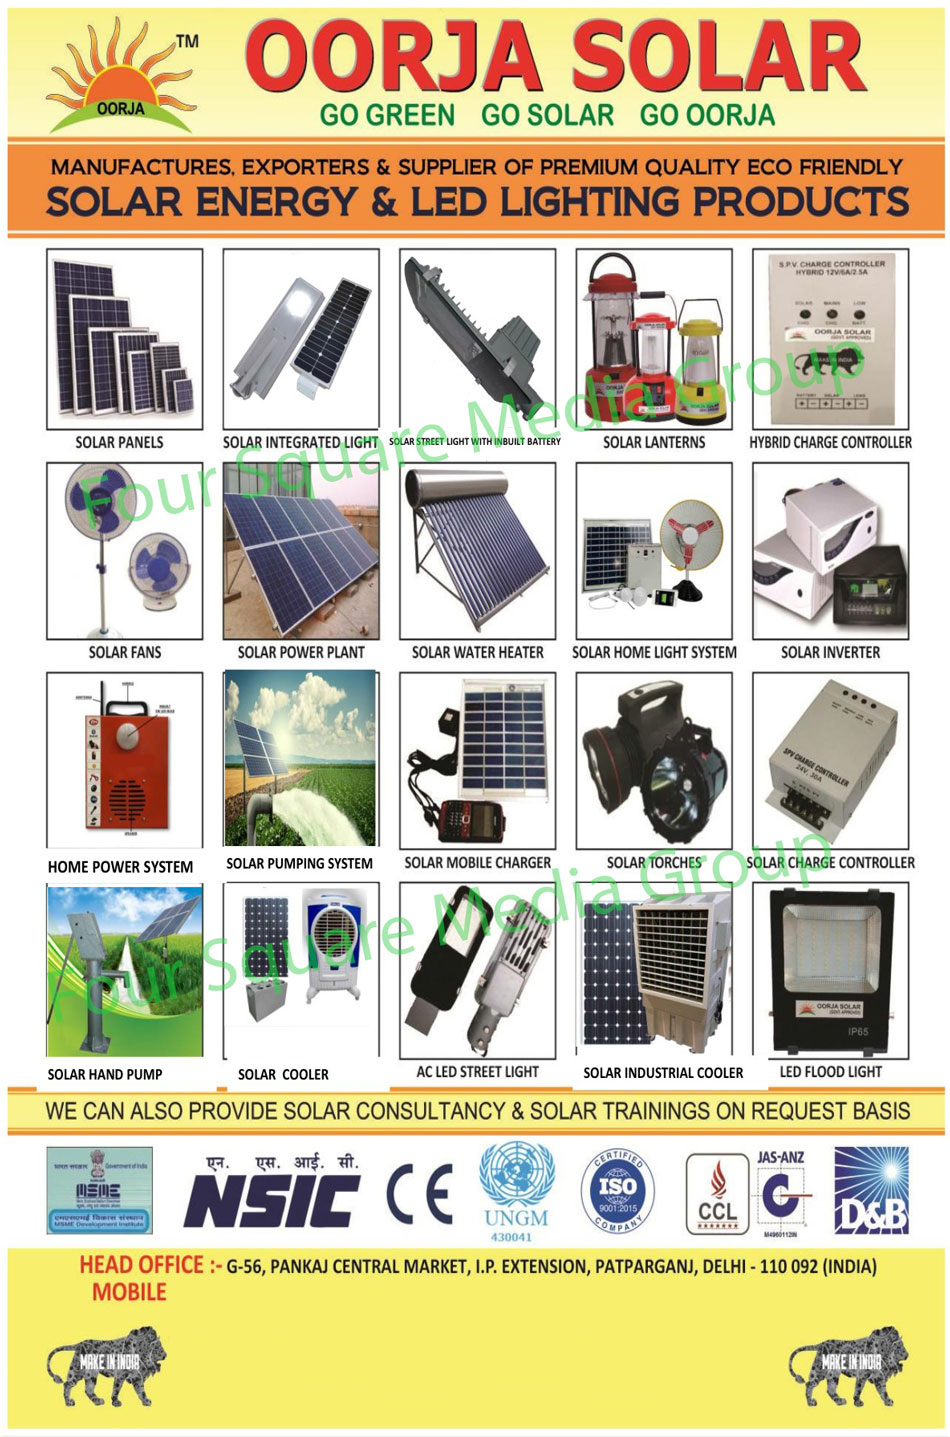 Solar Lantern, Solar Street Lights, Solar Home Light Systems, Solar Torch, Focus Lights, Solar Garden Lights, Solar Power Plants, Solar Agriculture Systems, Solar Cooker, Solar Crop Dryer, Solar Water Heating, Solar Fan, Solar Cooler, Solar Mobile Charger, CFL Street Lights, Led Lights, Led Street Lights, Two Led Solar Home Lights, Solar Home Light Economy, Three Led Solar Home Lights, Table Fans, Solar Road Studs, Cooling Caps, Solar Charge Controllers, Led Bulbs, Solar Energy Products, Solar Panels, Solar Integrated Lights, Hybrid Charge Controller, Solar Inverter, Led High Bay Lights, Dolphin Street Lights, AC Led Street Lights, Led Flood Lights, Led Tube Lights, Solar Consultancy Services, Solar Training Services